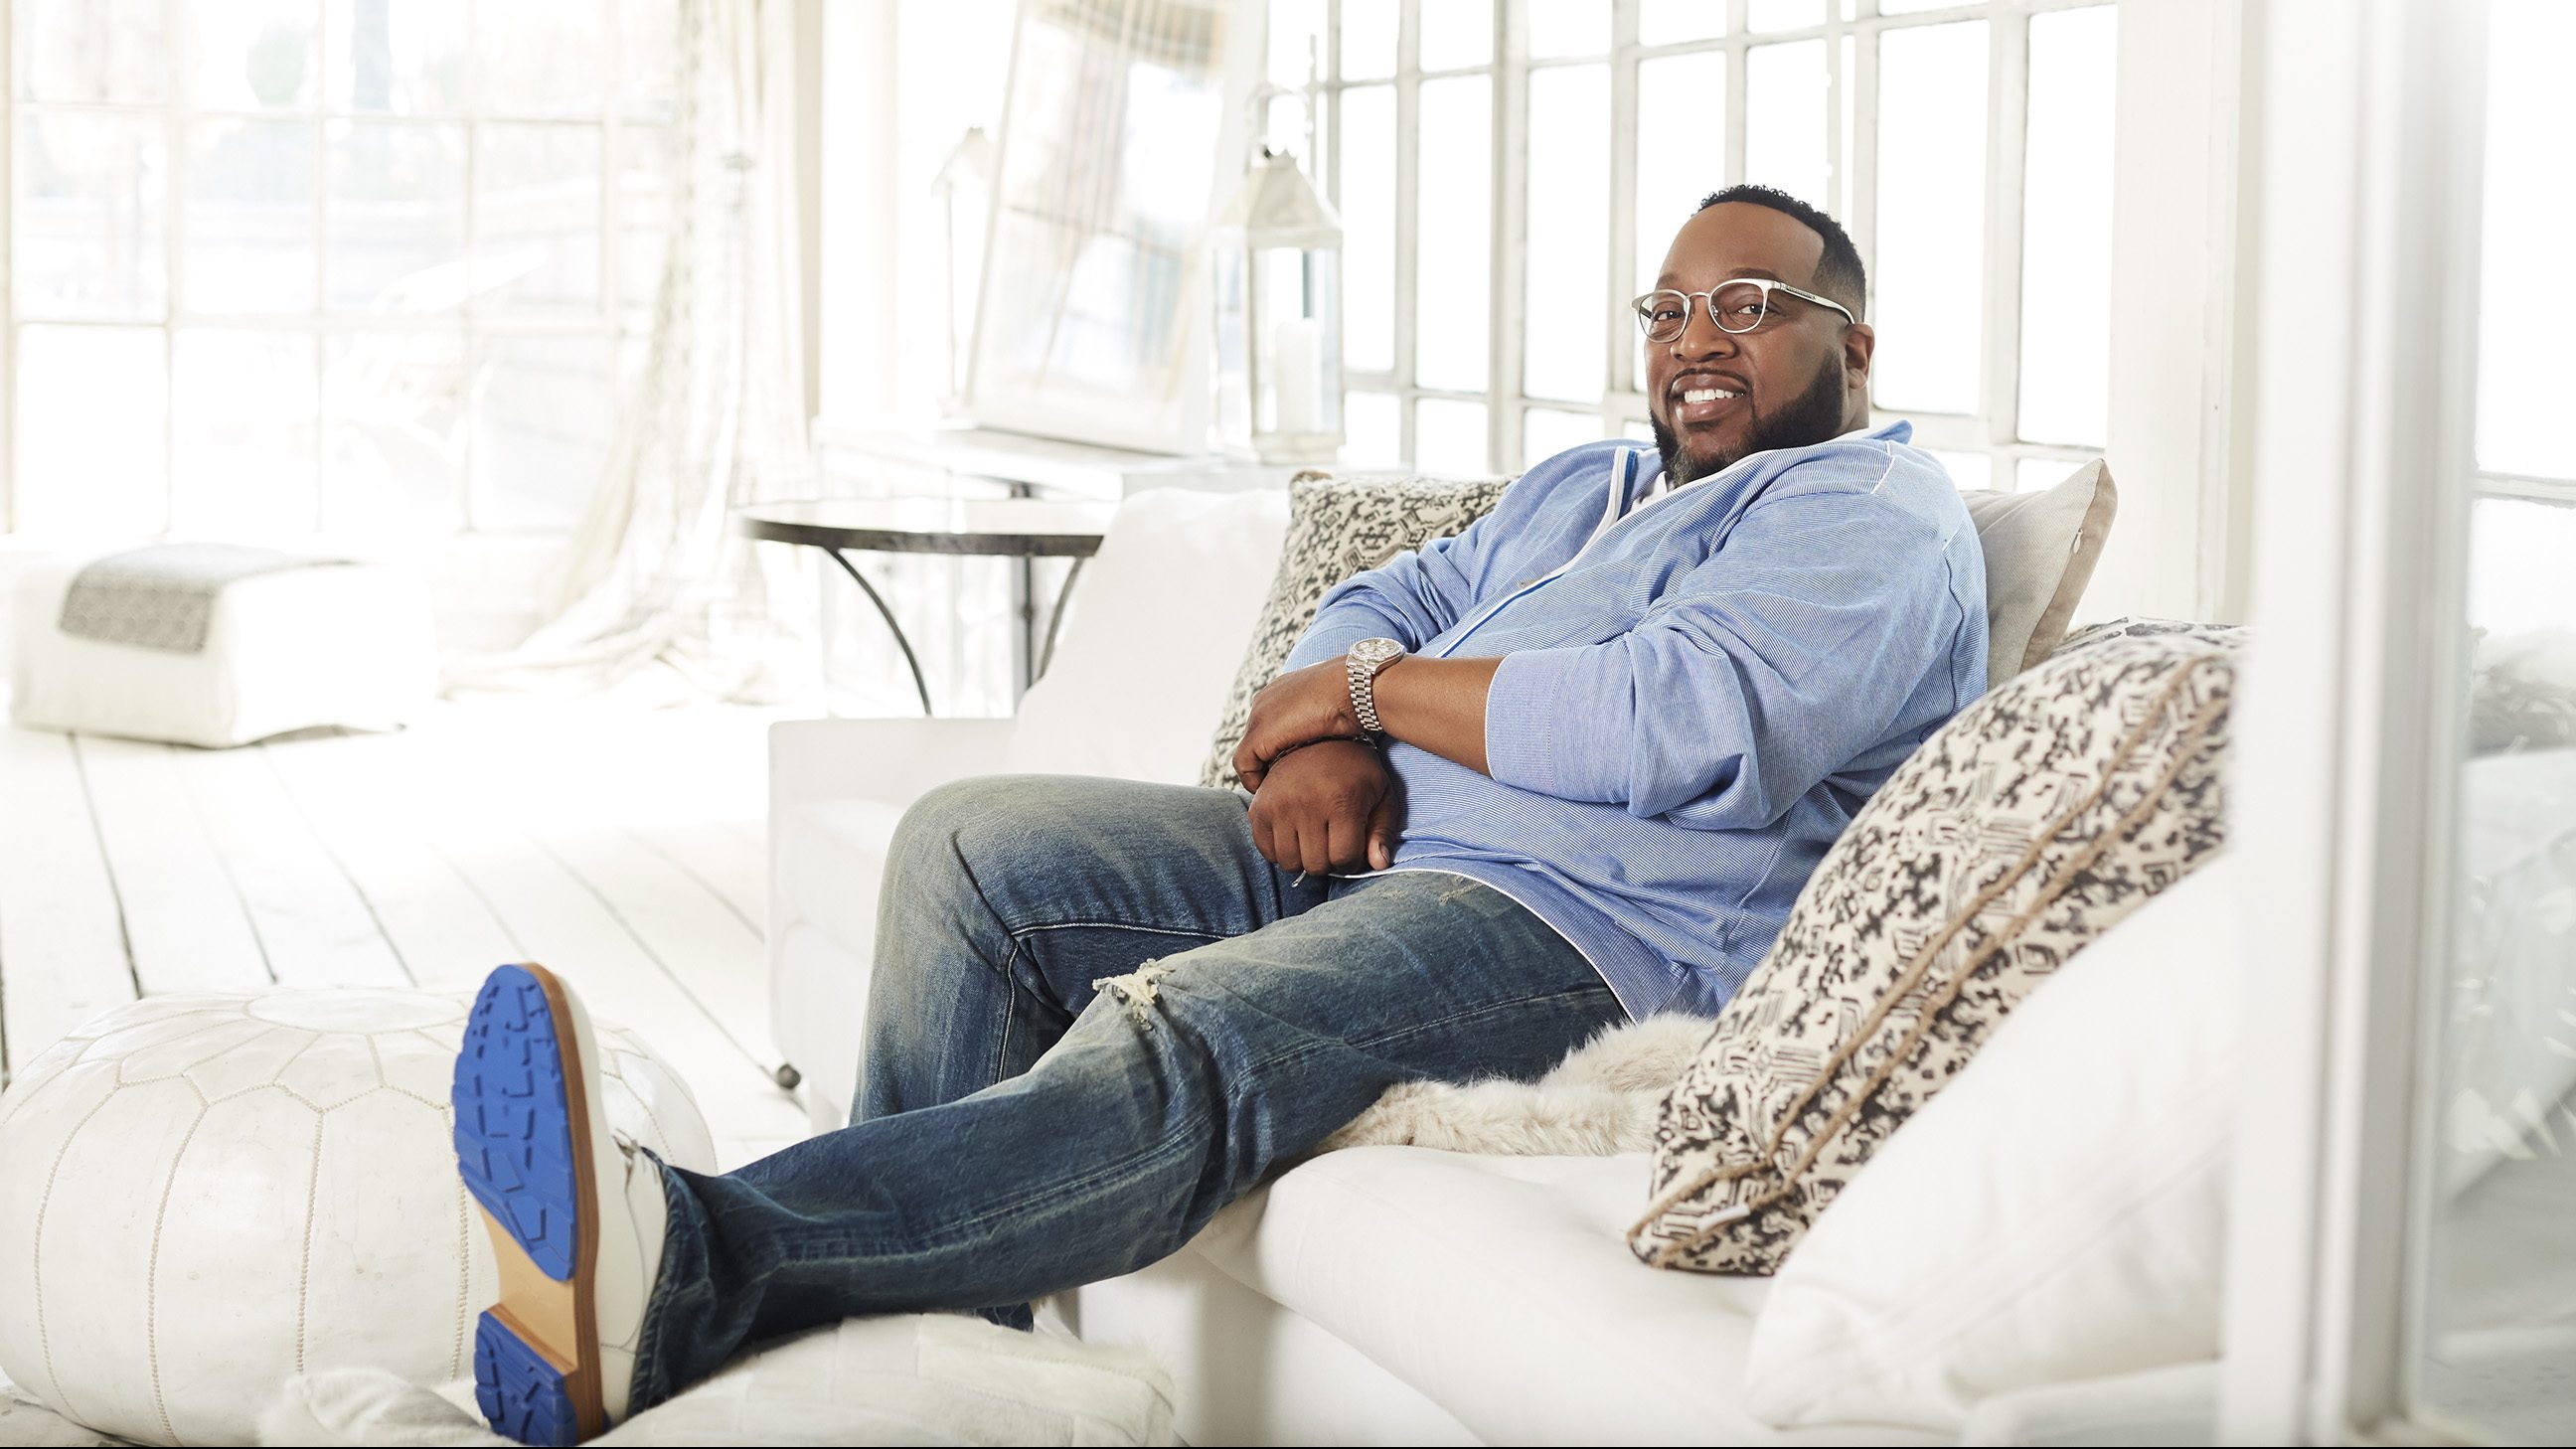 Becoming a father is Bishop Marvin Sapp's 'greatest